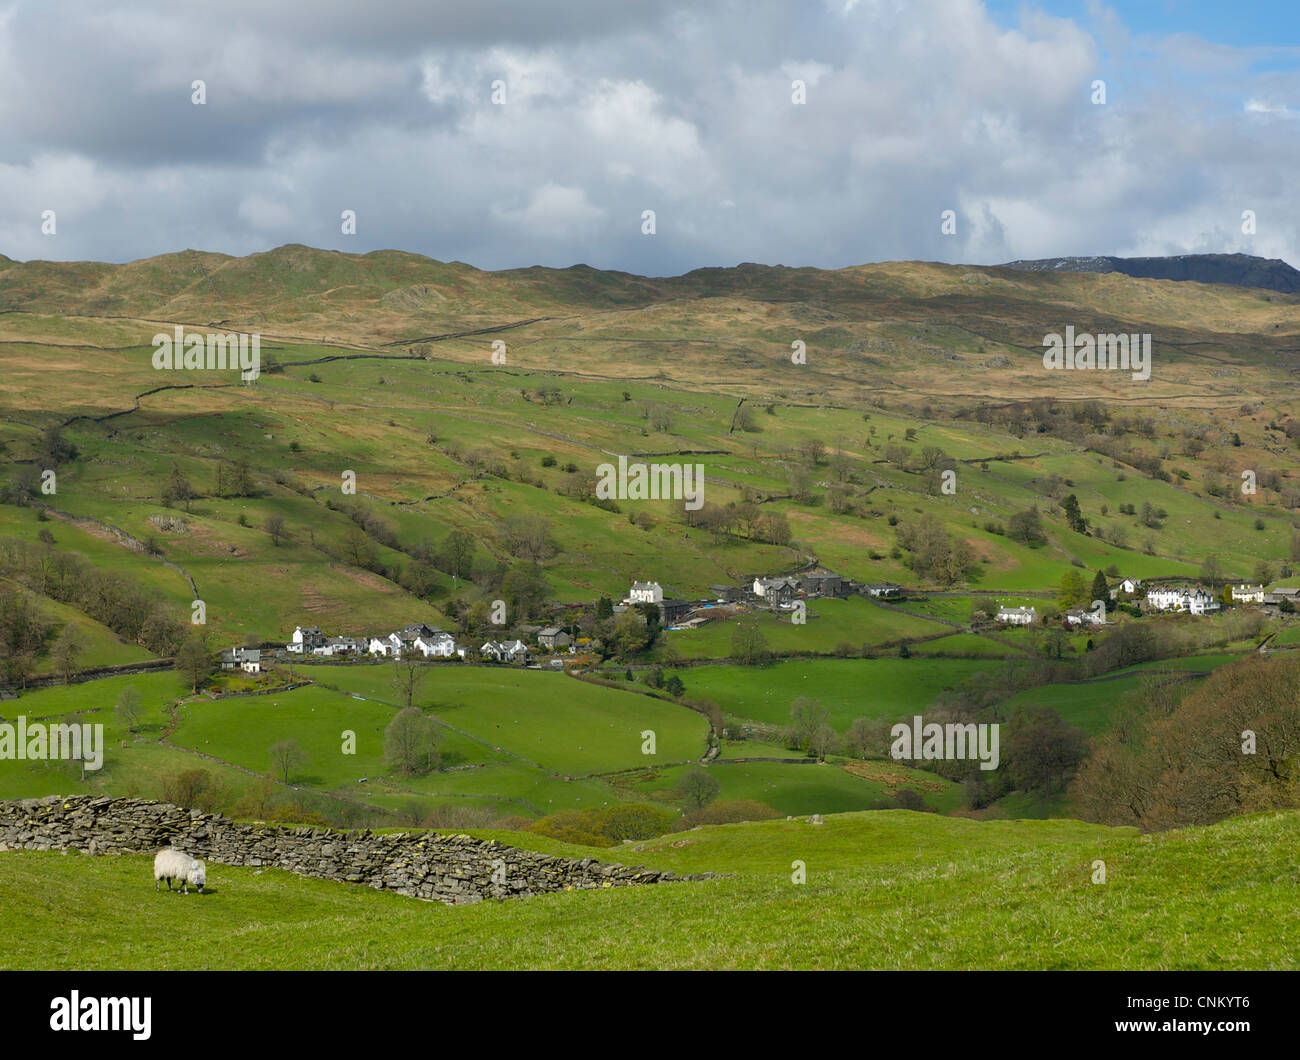 The village of Troutbeck, Lake District National Park, Cumbria, England UK - Stock Image